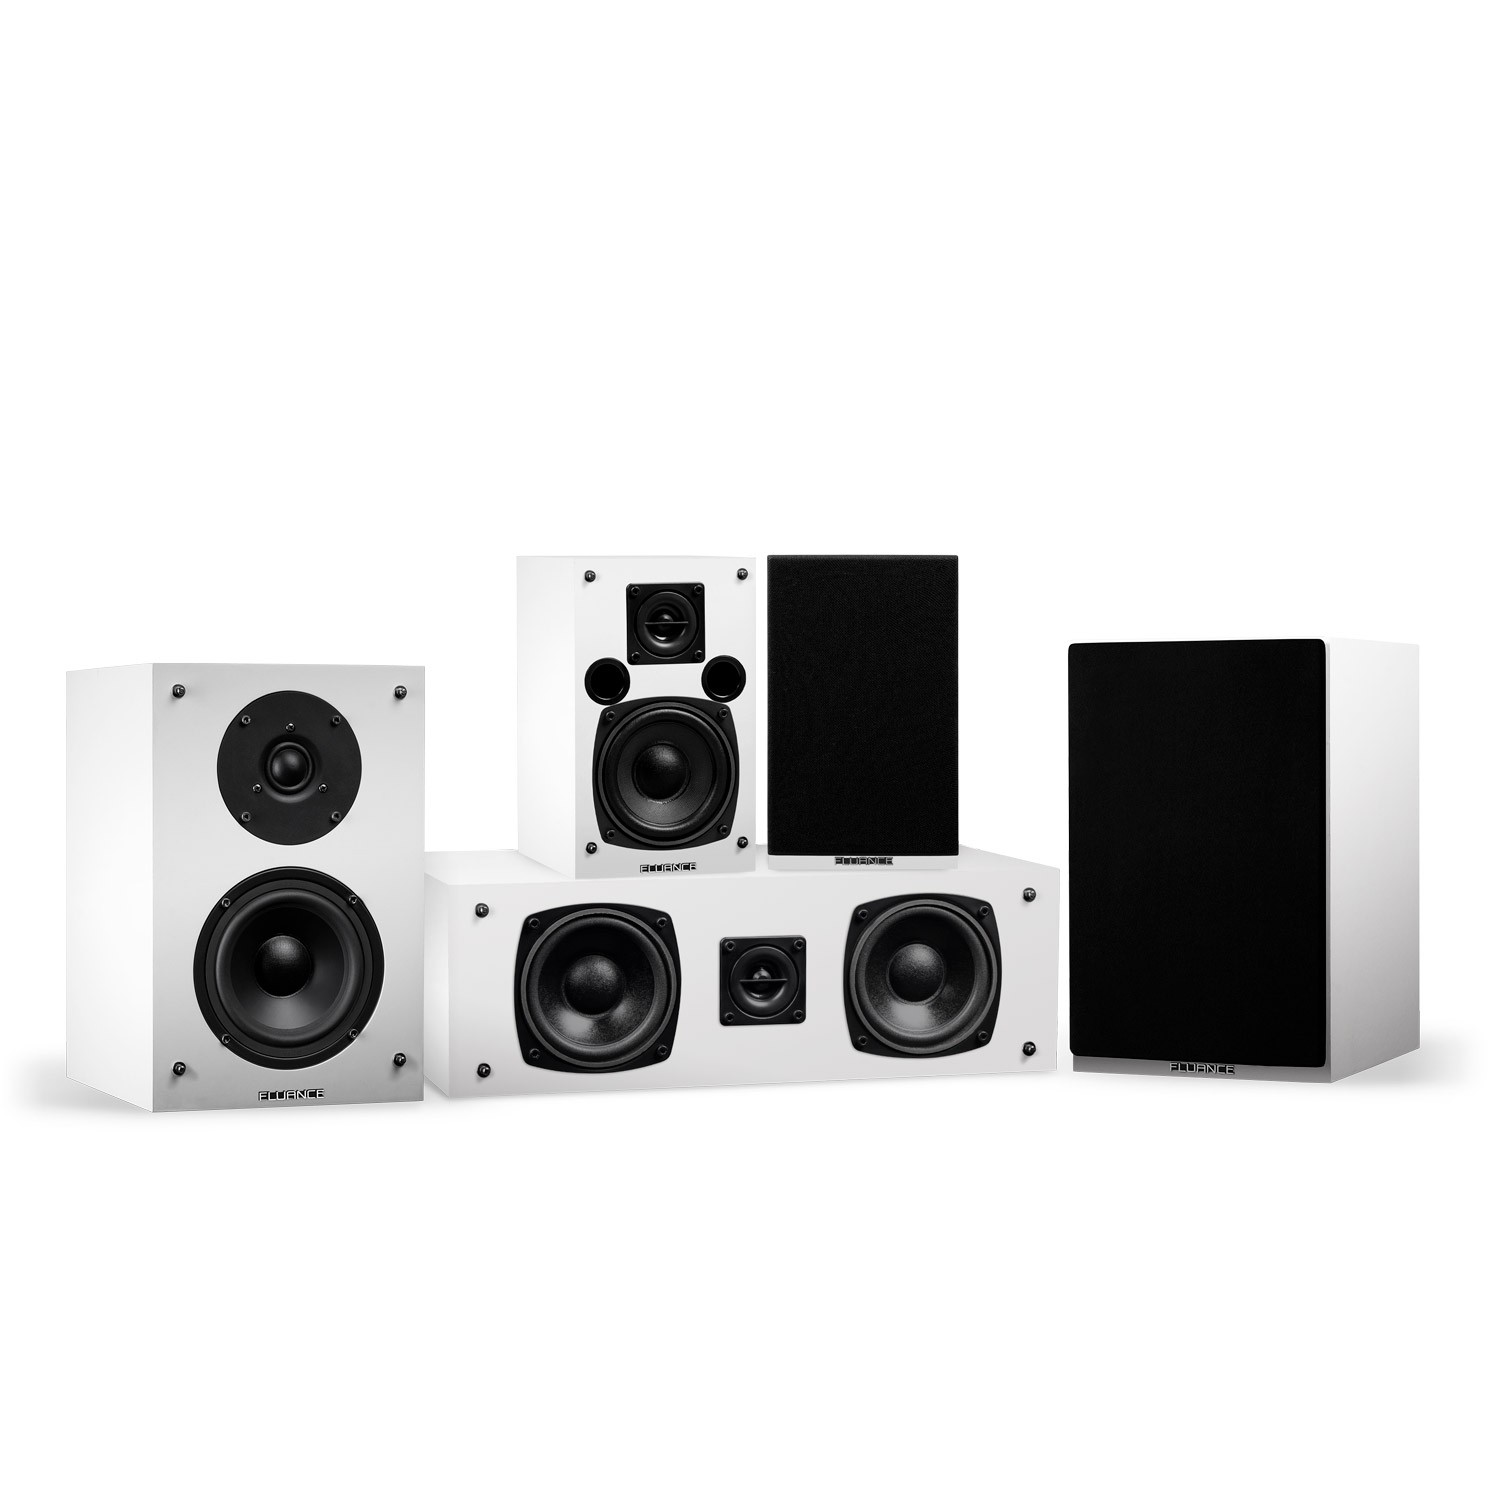 Elite Series White Compact Surround Sound Home Theater 5.0 Channel Speaker System